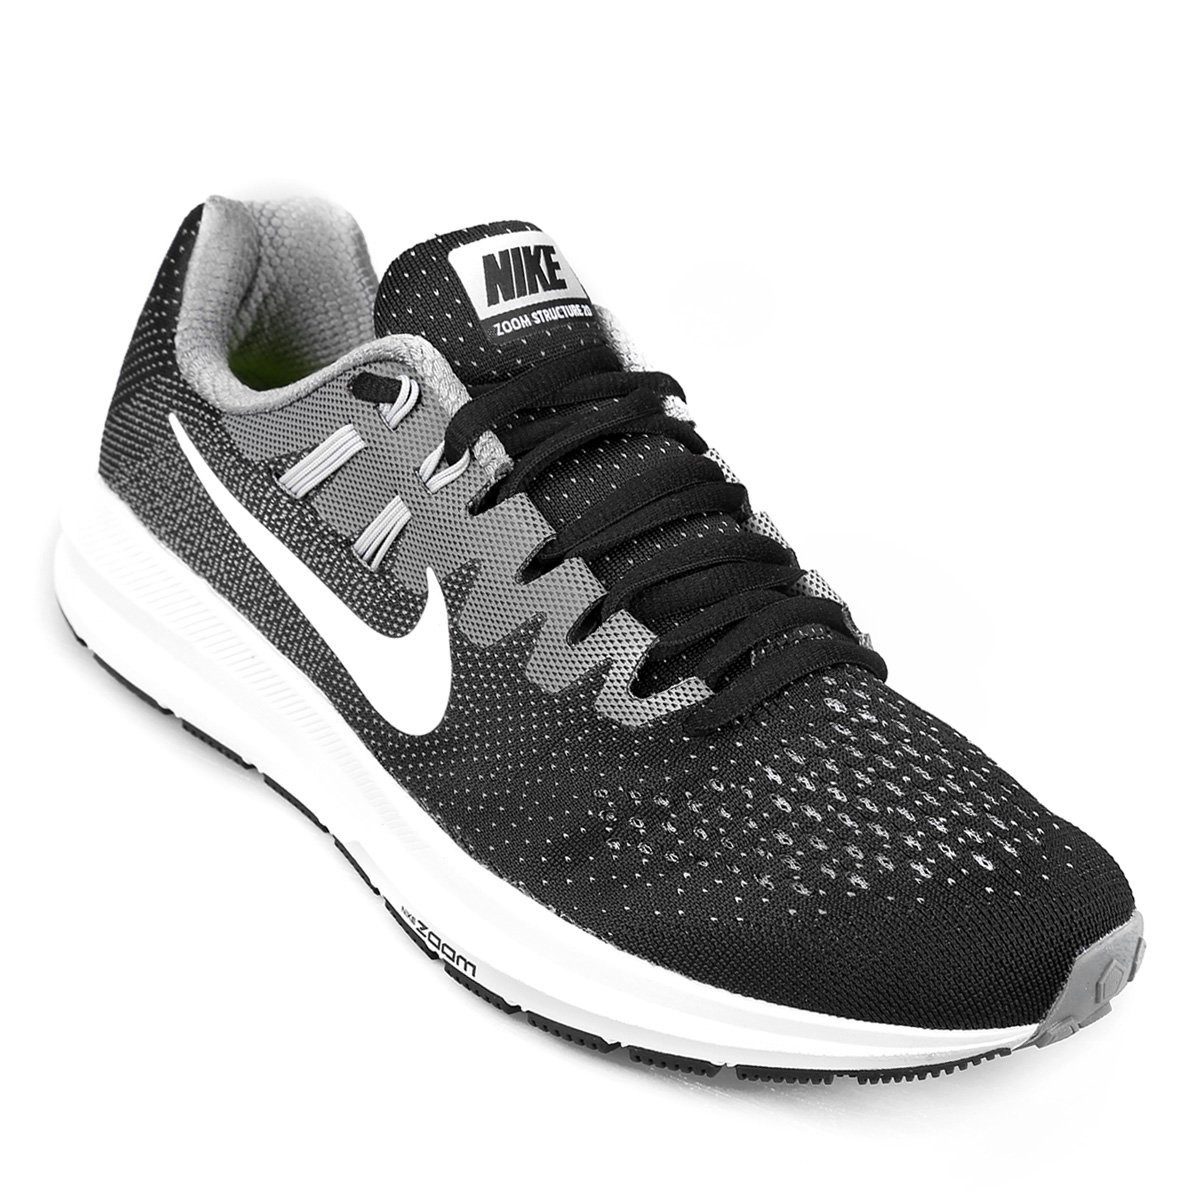 dd379b05e zapatillas nike air zoom structure 20 - negro y blanco. Cargando zoom.